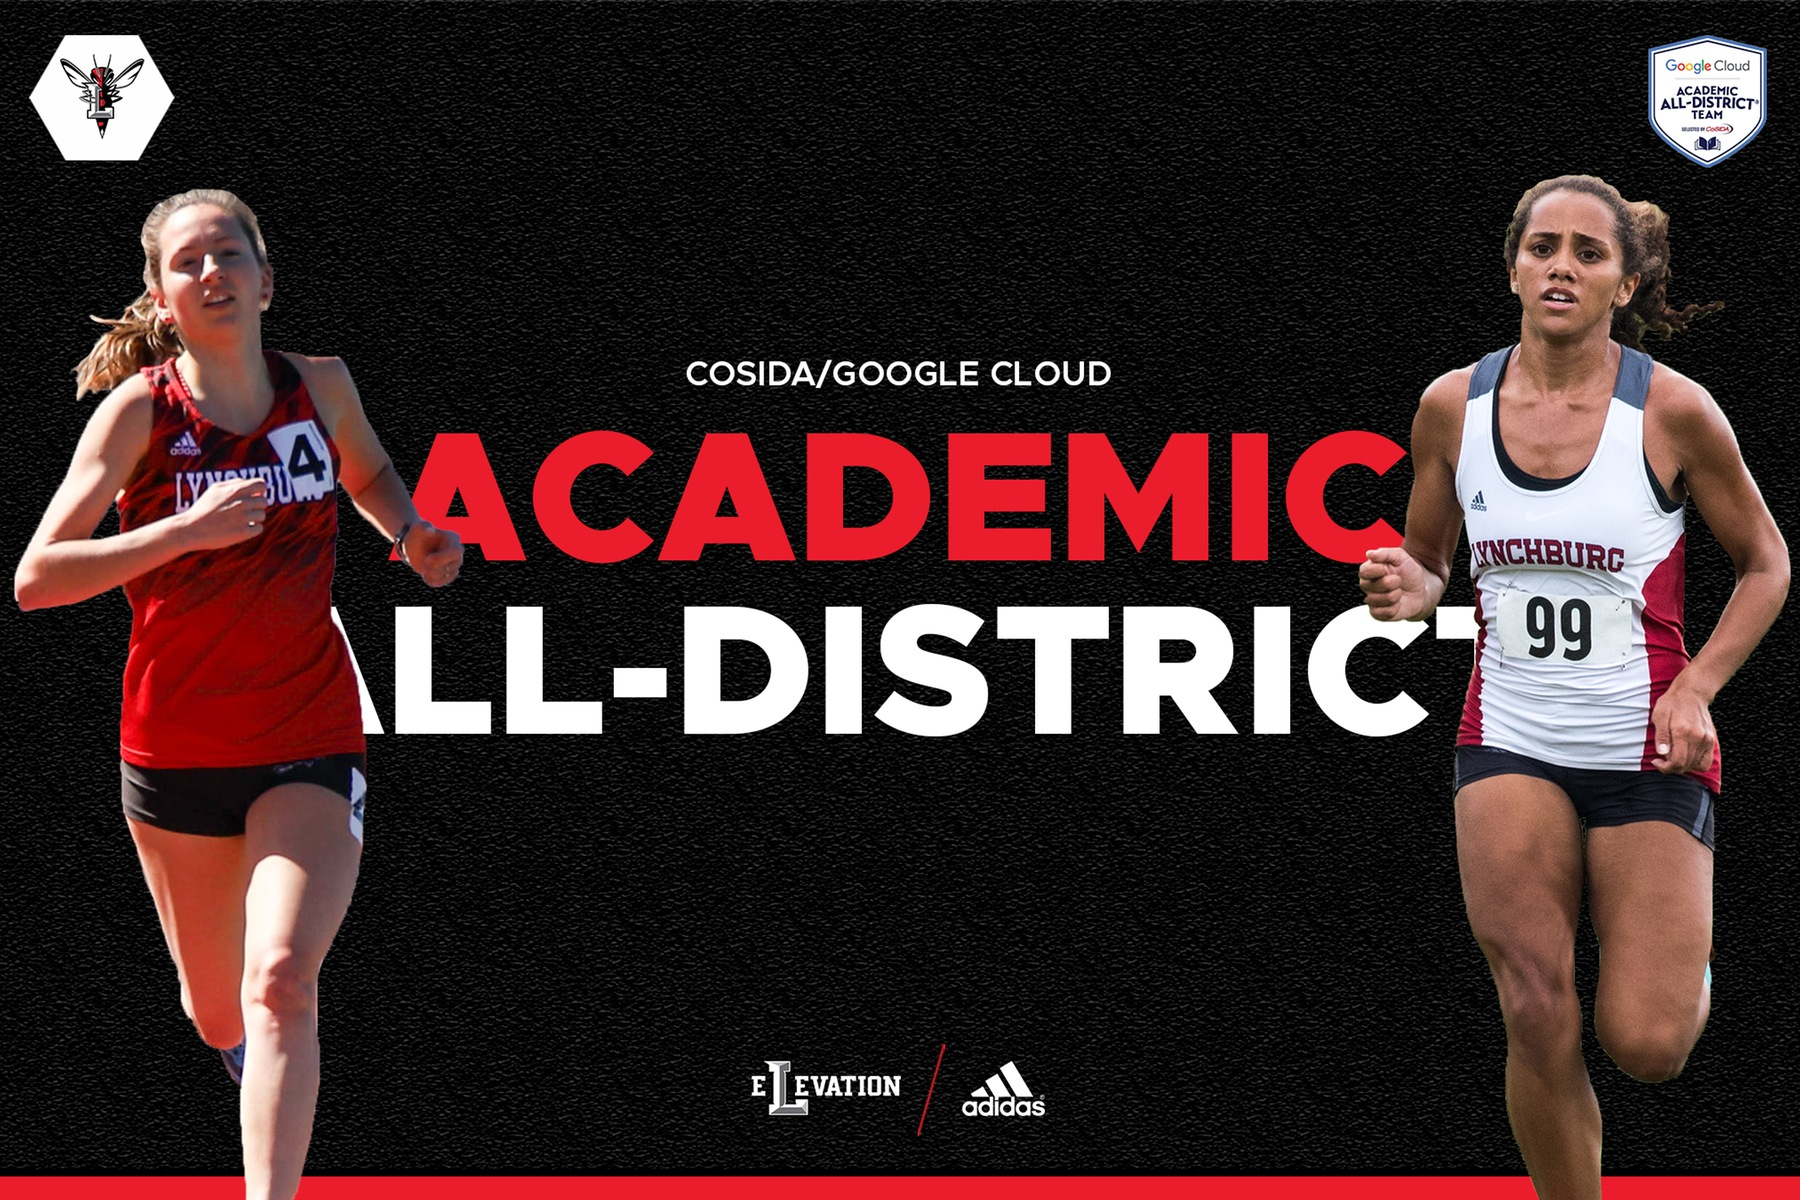 Cutout images of Schreiber and Johnson running on black background. Text: Academic All-District